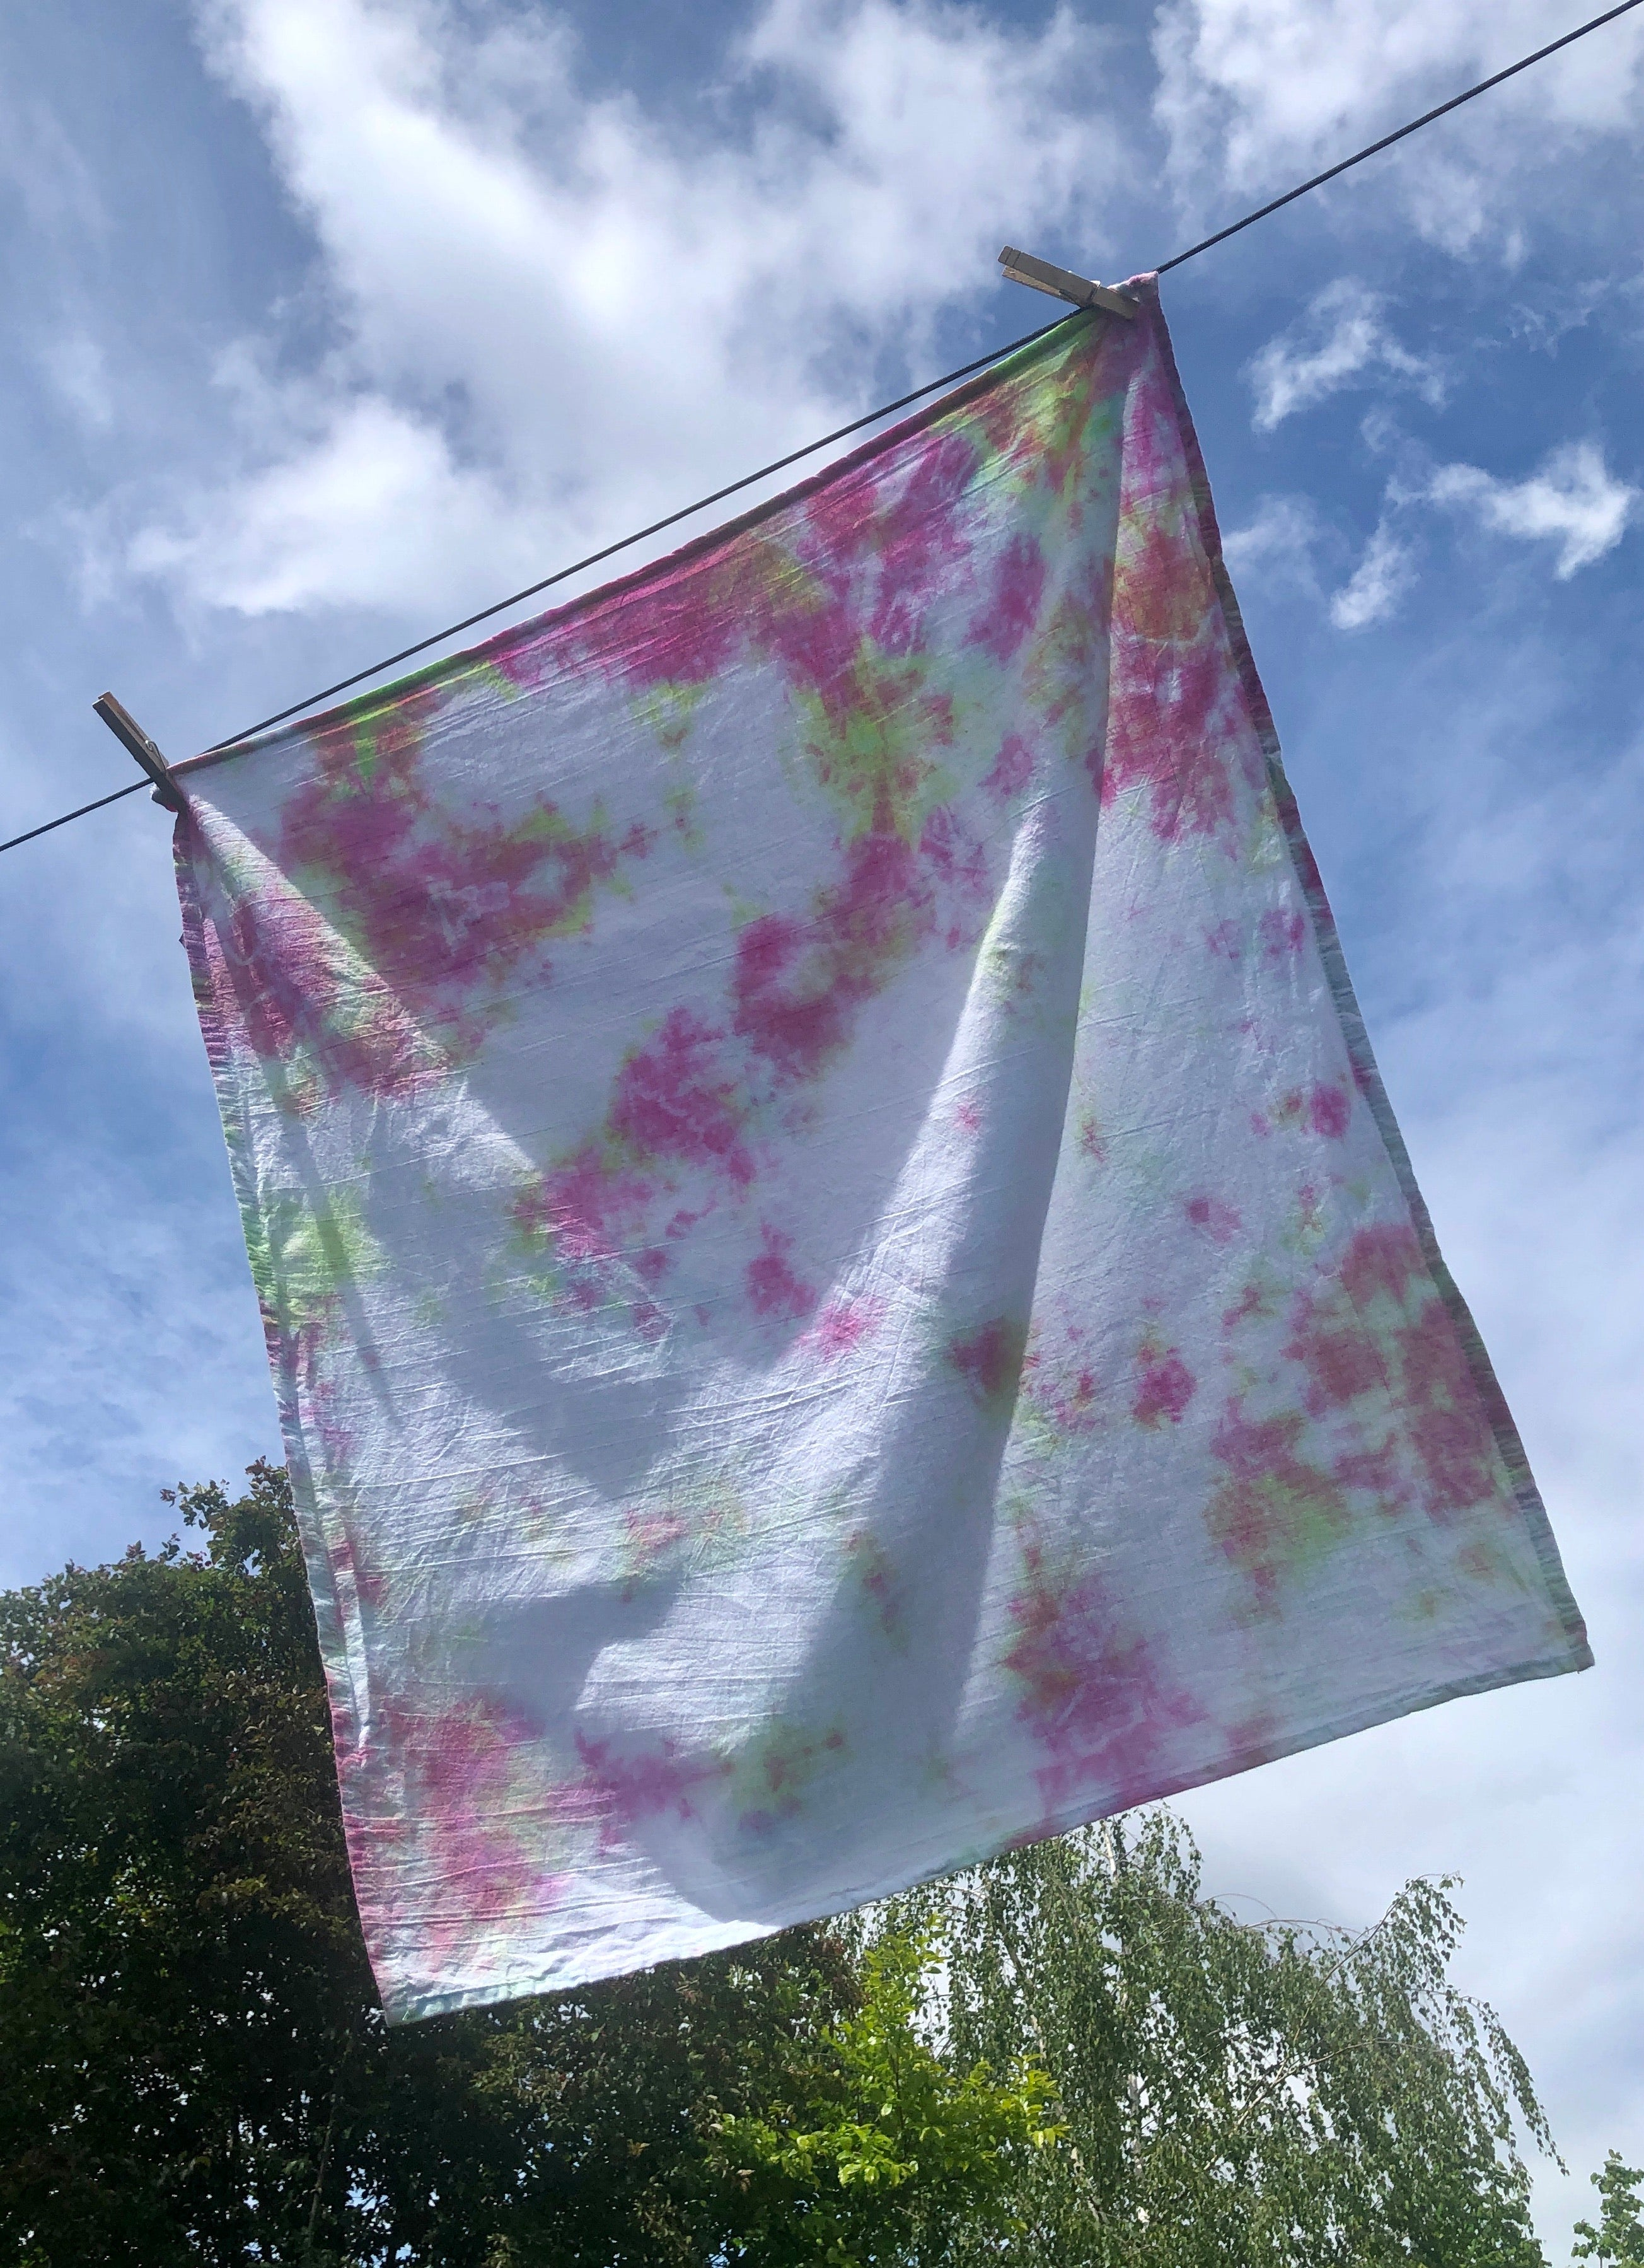 Søren tie dye set of 4 hand towels